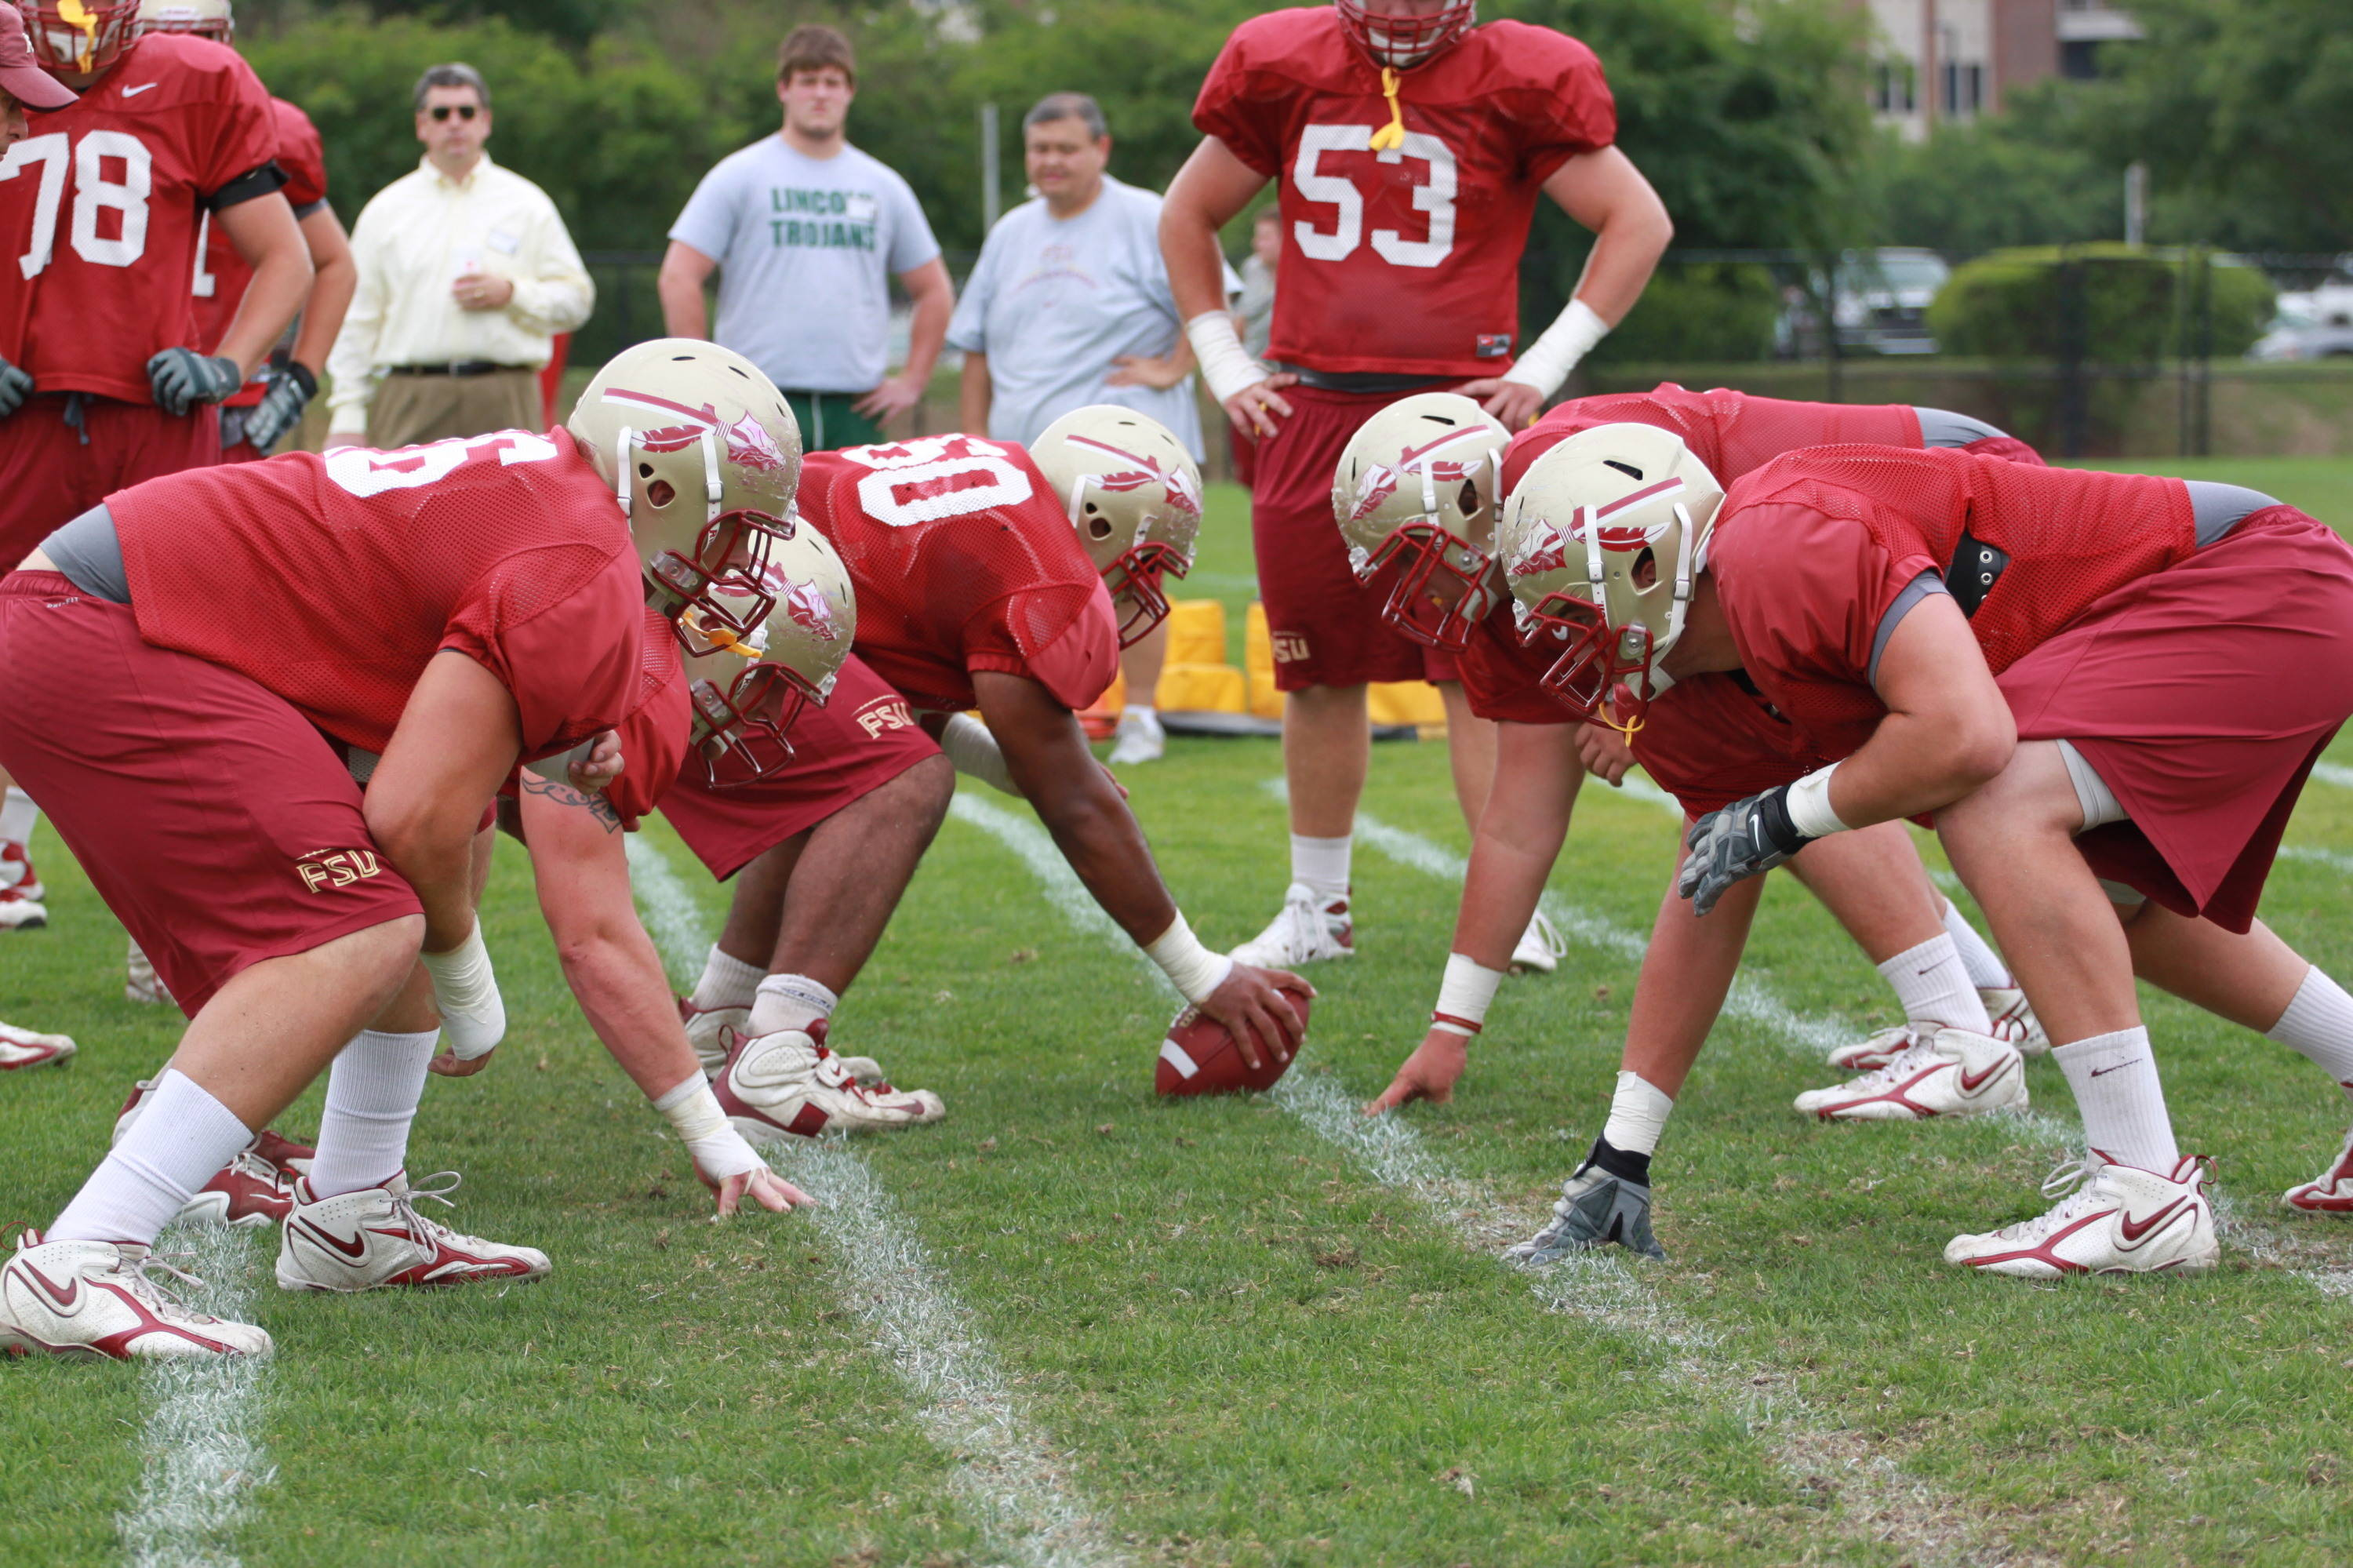 The offensive line getting down to business.